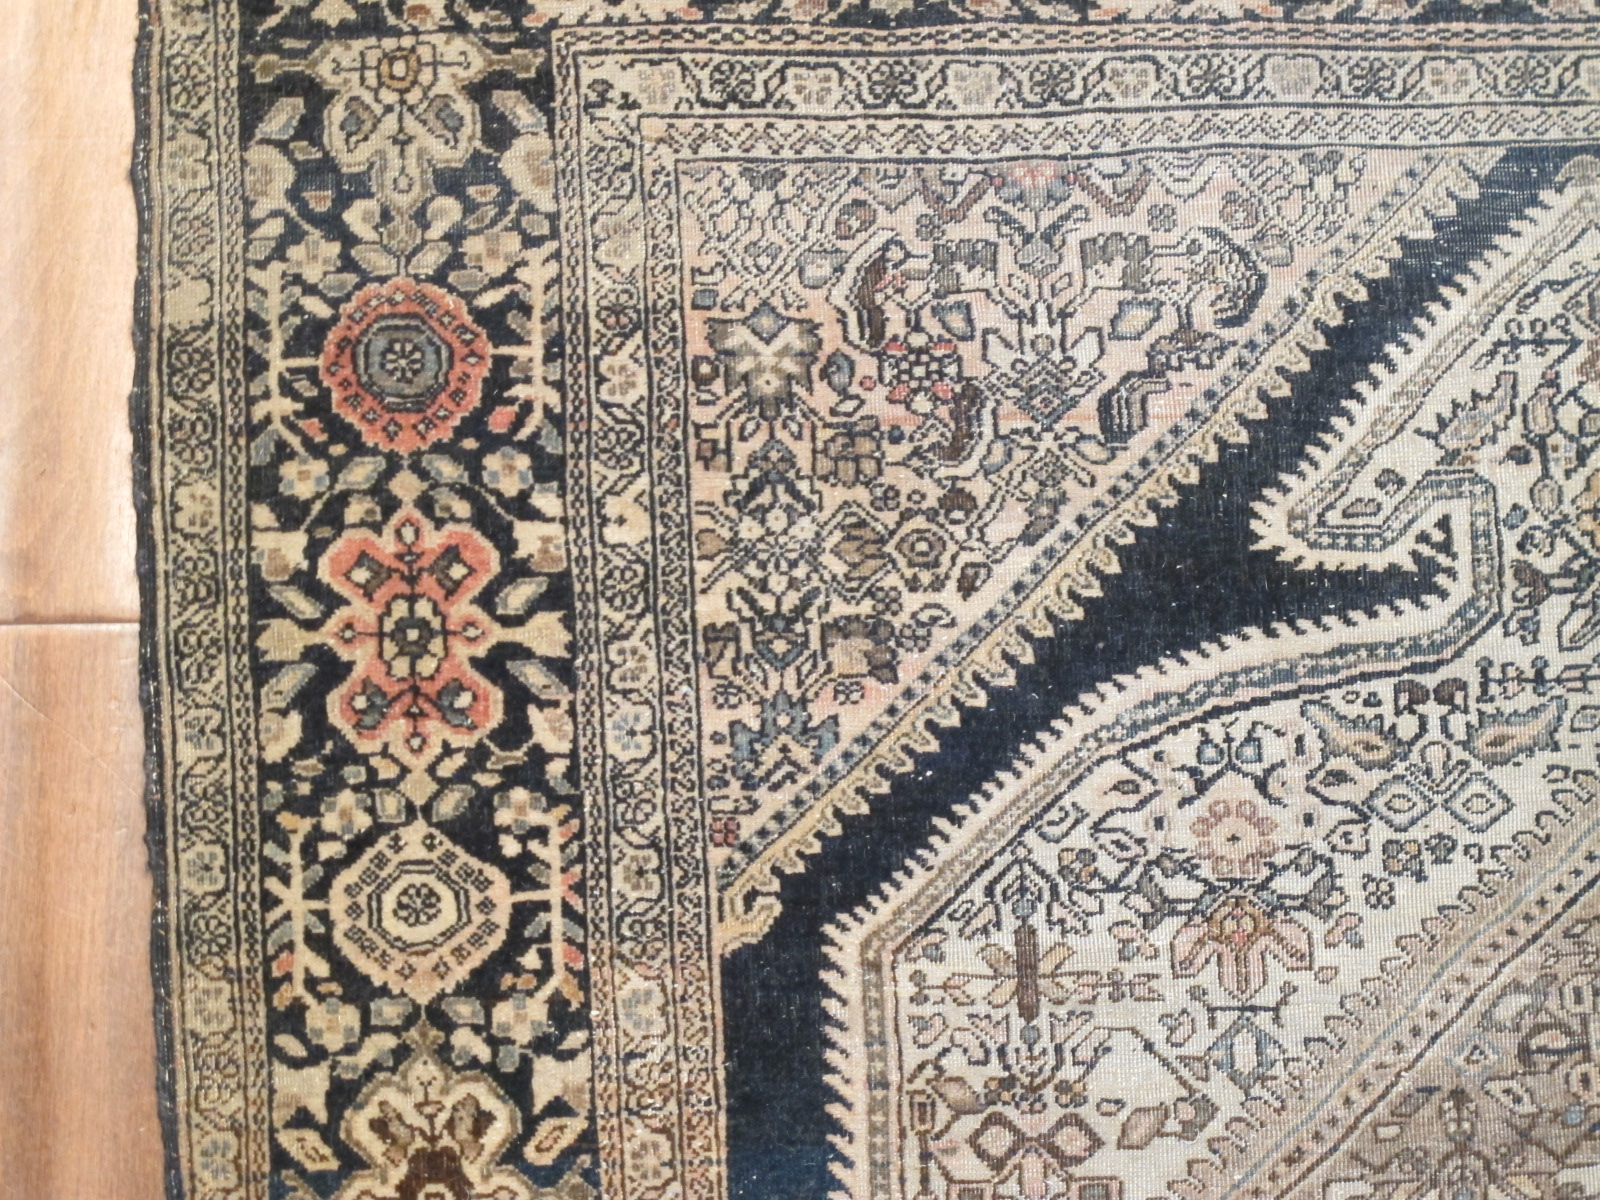 12882 Antique Persian Sarouk Farahan rug 3,2x4,9 (1)